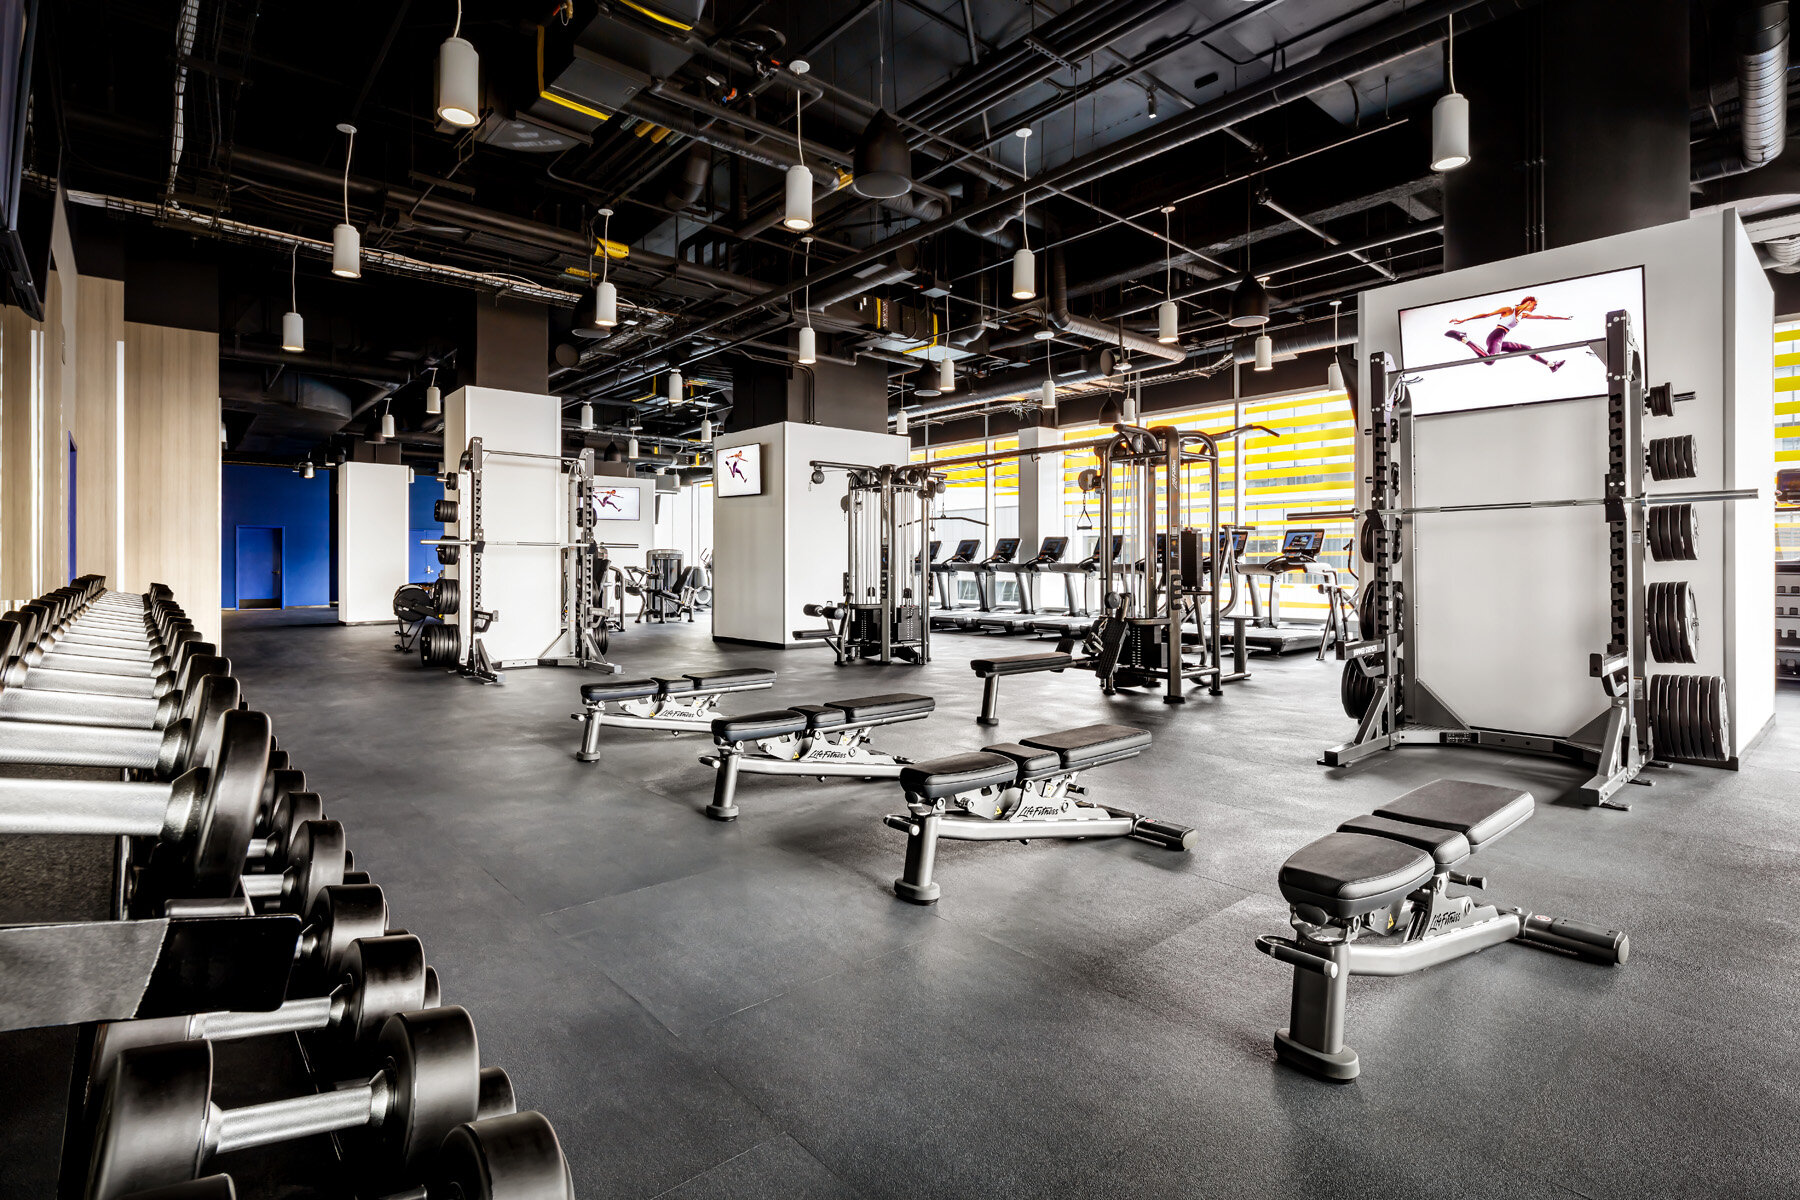 OPTIMIZE yOUR TRAINING - We've designed a modern, functional space where you can sweat, recoup and refuel in one place. We make it easy for you to go from work to working out to going out.